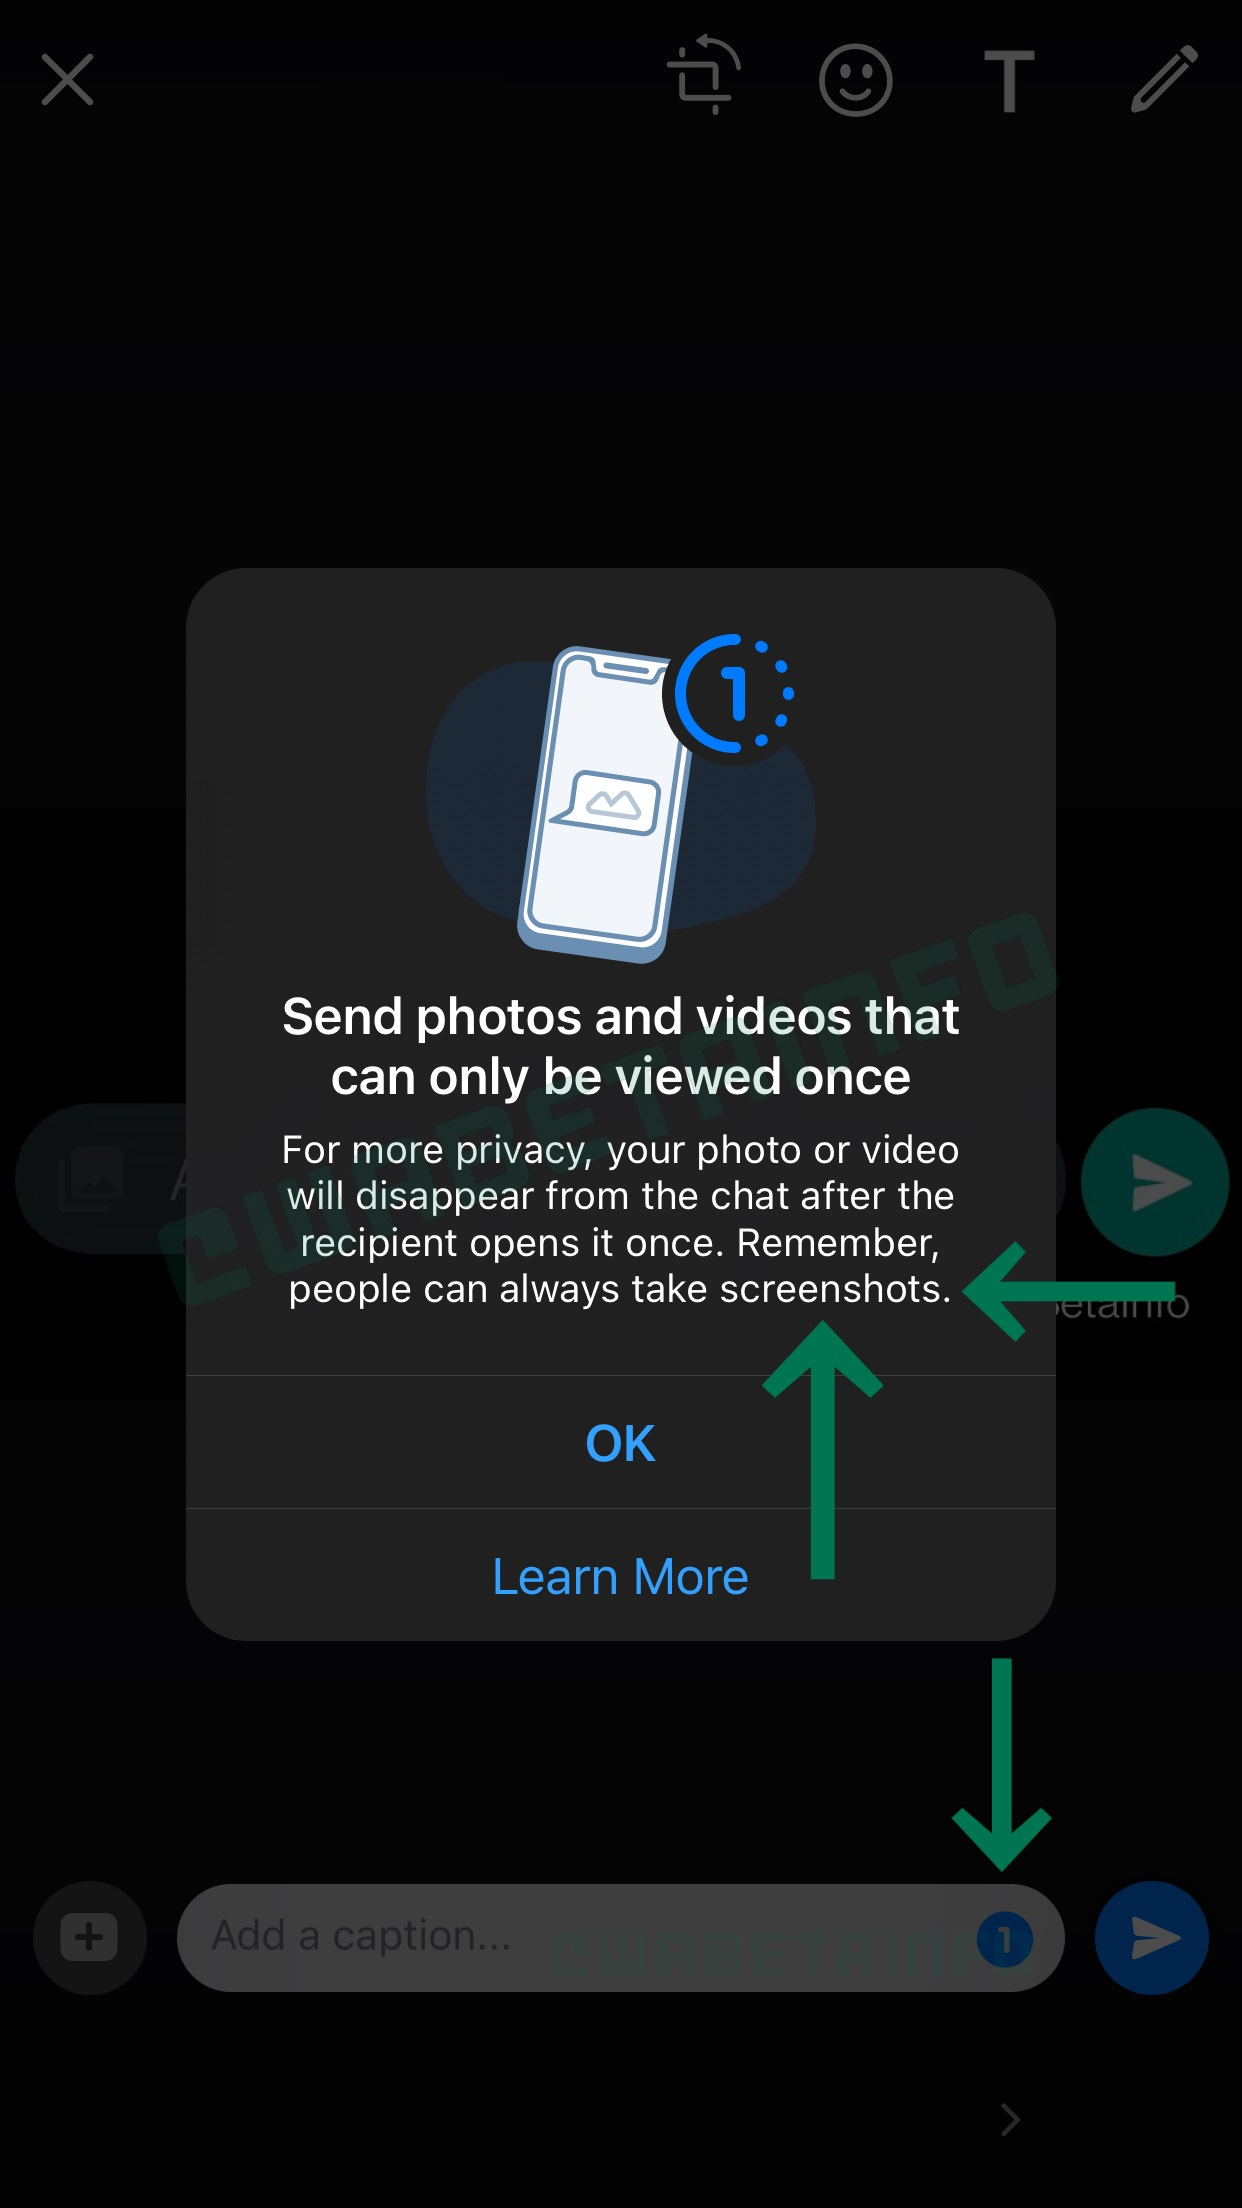 A screenshot showing a splash screen advertising WhatsApp's view-once mode on iPhone